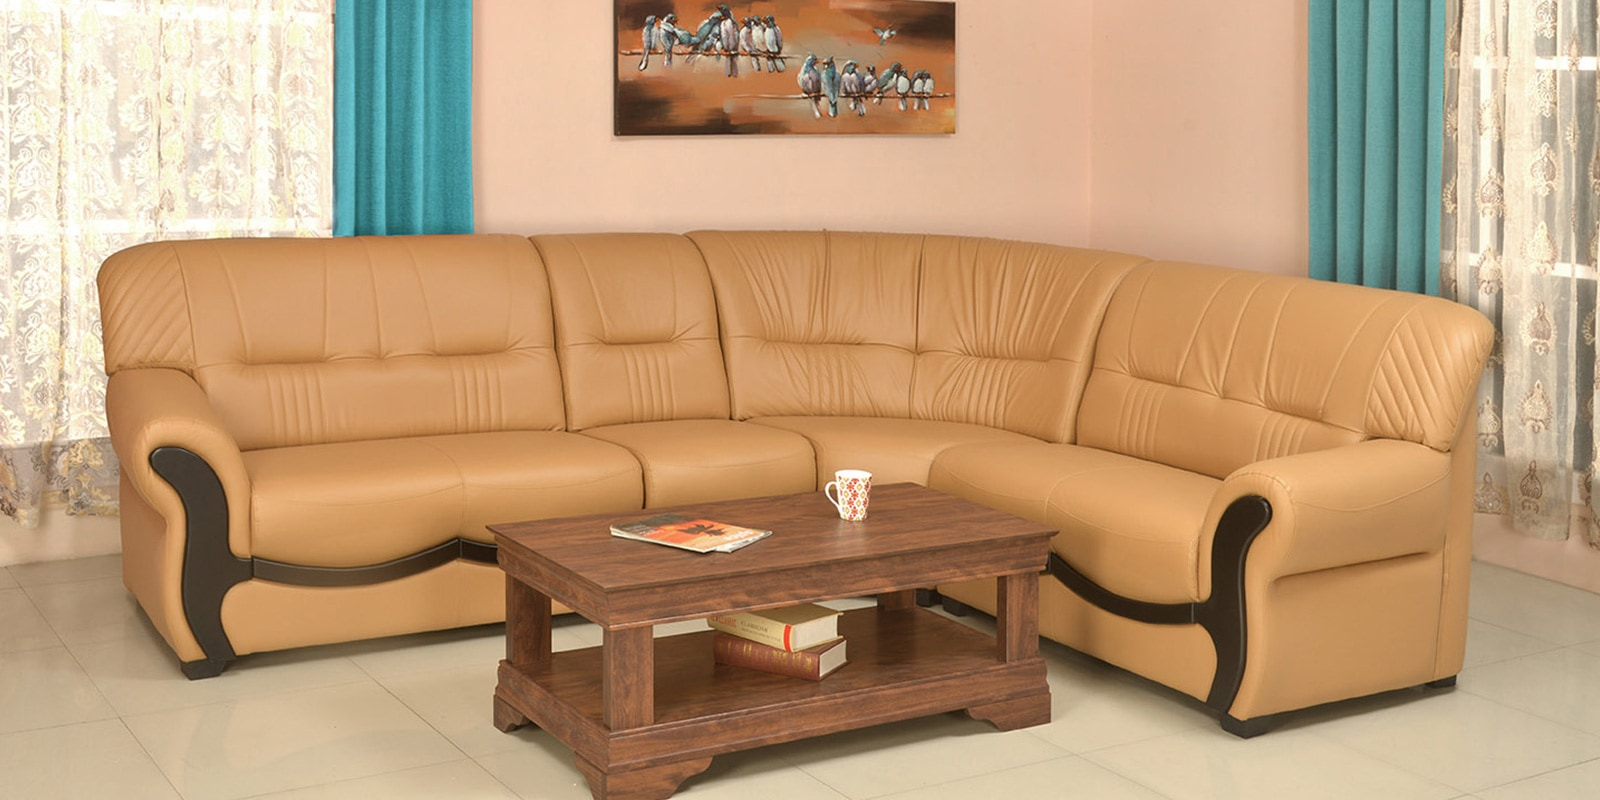 Picture of: Buy Dublin Corner Sofa In Light Brown Color By Nilkamal Online Lhs Sectional Sofas Sectional Sofas Furniture Pepperfry Product